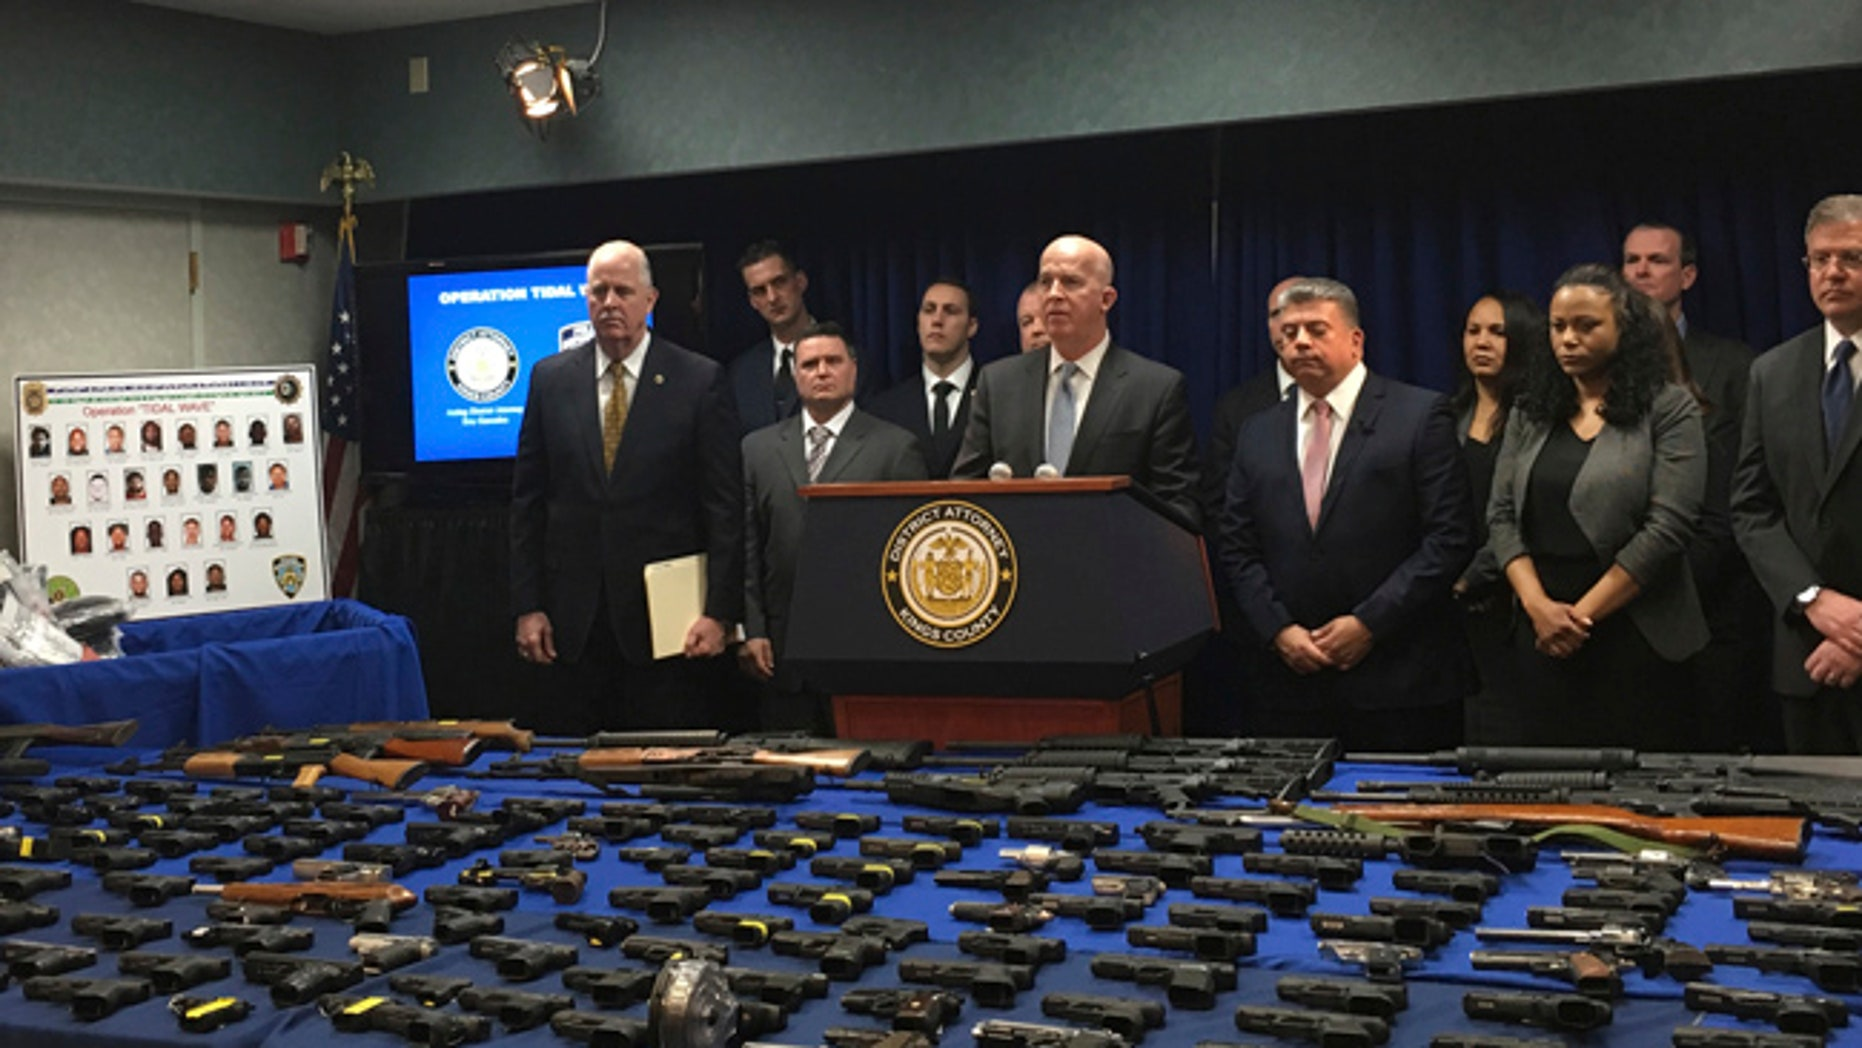 NYC Police Commisssioner James O'Neill speaks at a news conference in Brooklyn, New York